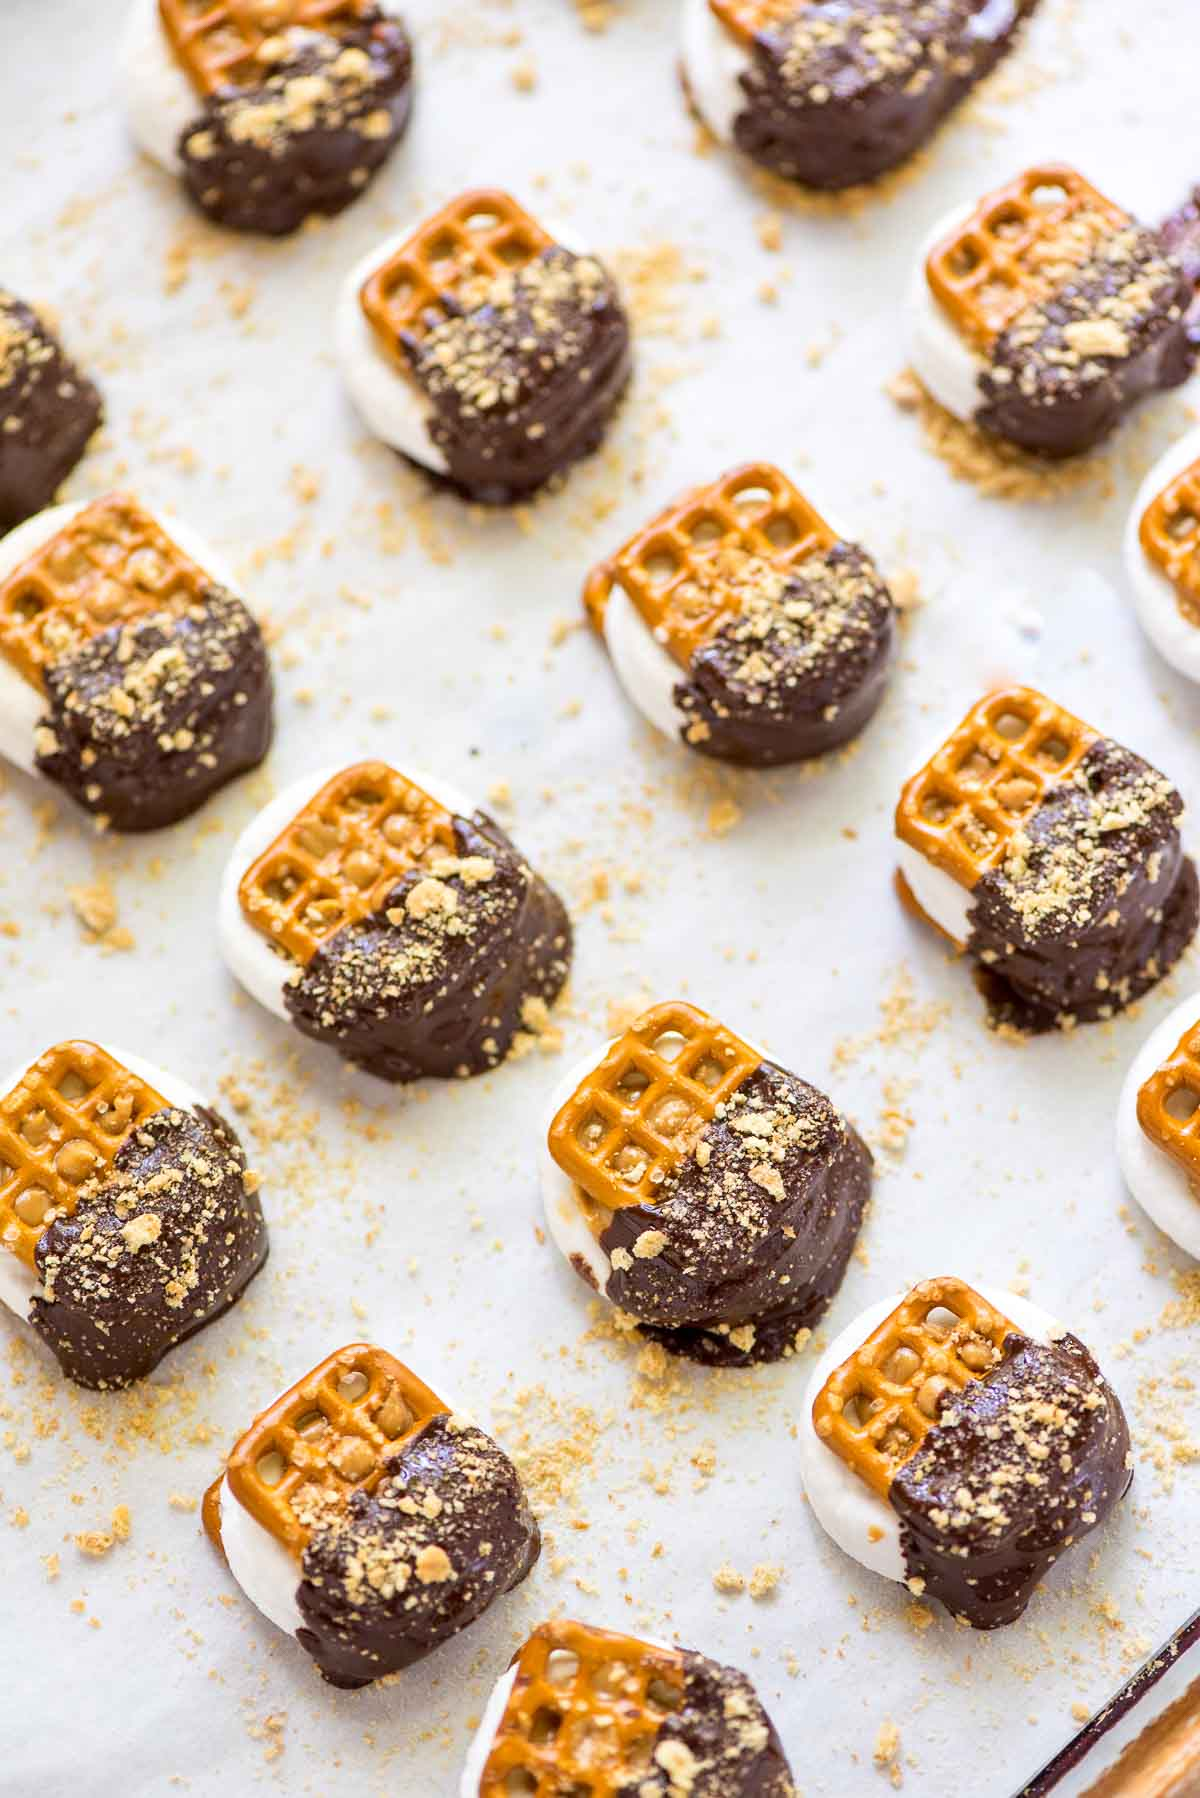 Chocolate Dipped Pretzel SMores Bites— These were SO EASY and so good! Salty, sweet, and perfect for a summer party or to make with kids.